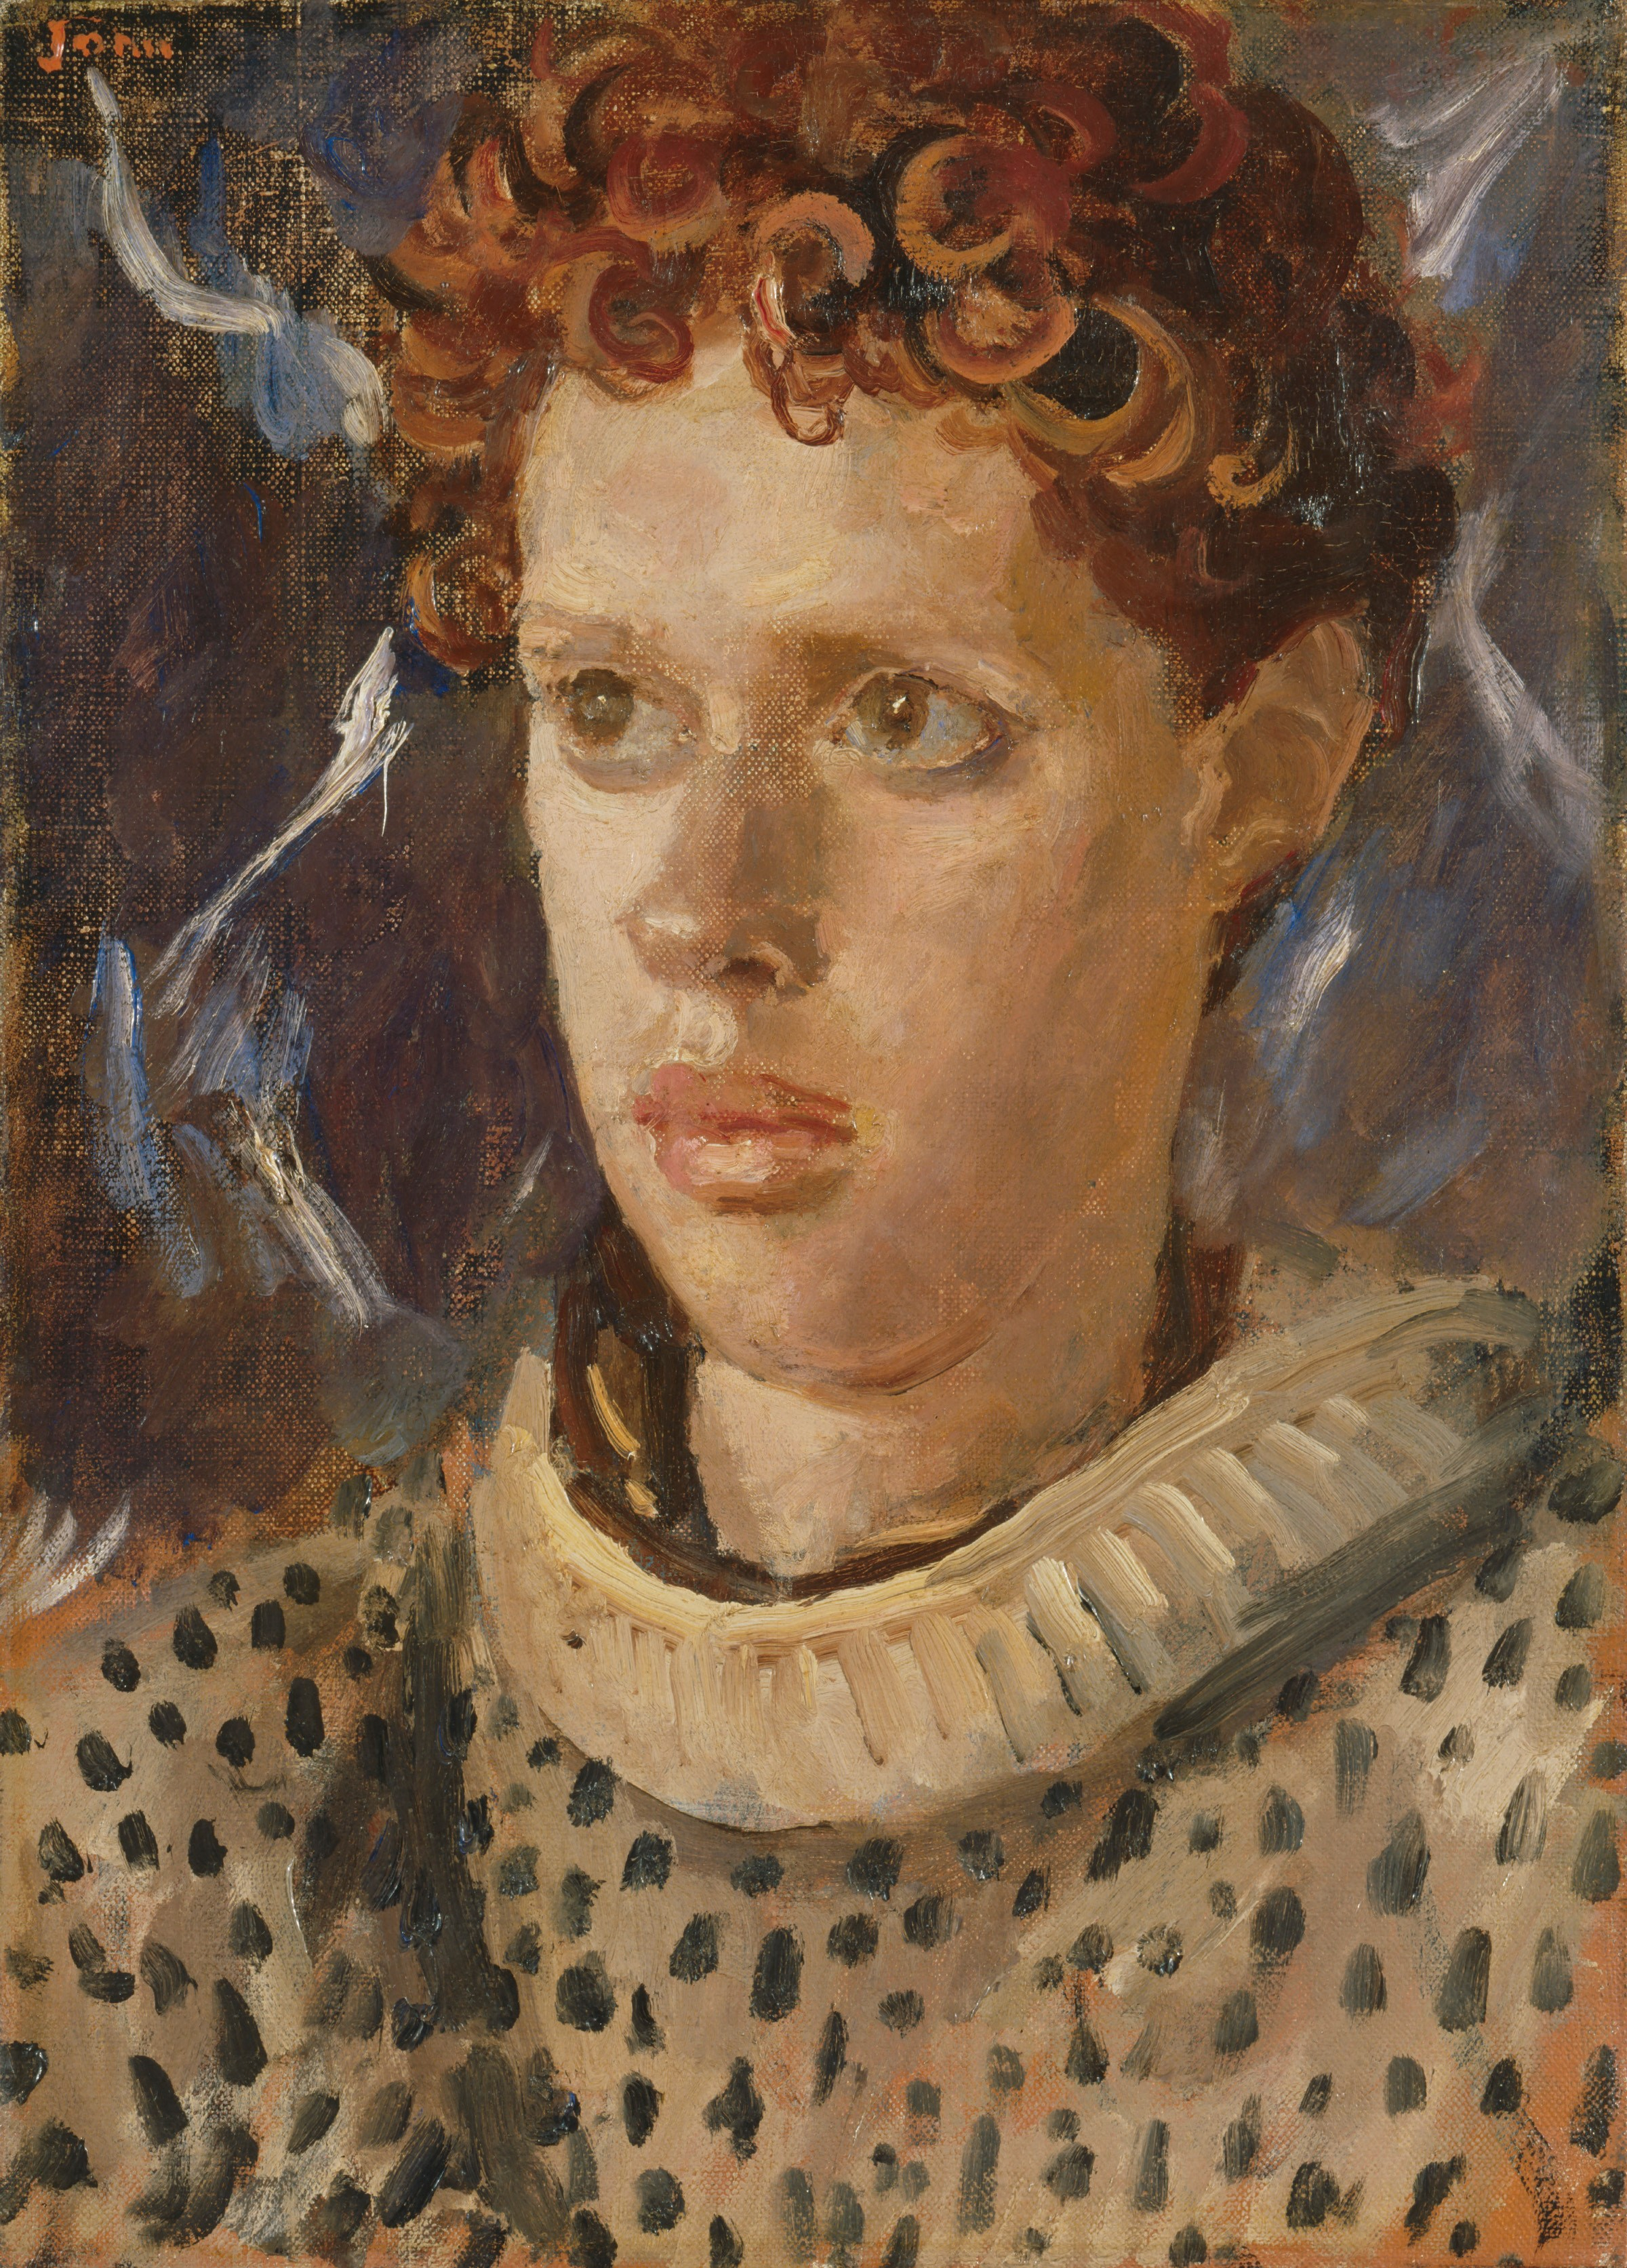 A portrait of Dylan Thomas by August John (National Portrait Gallery)